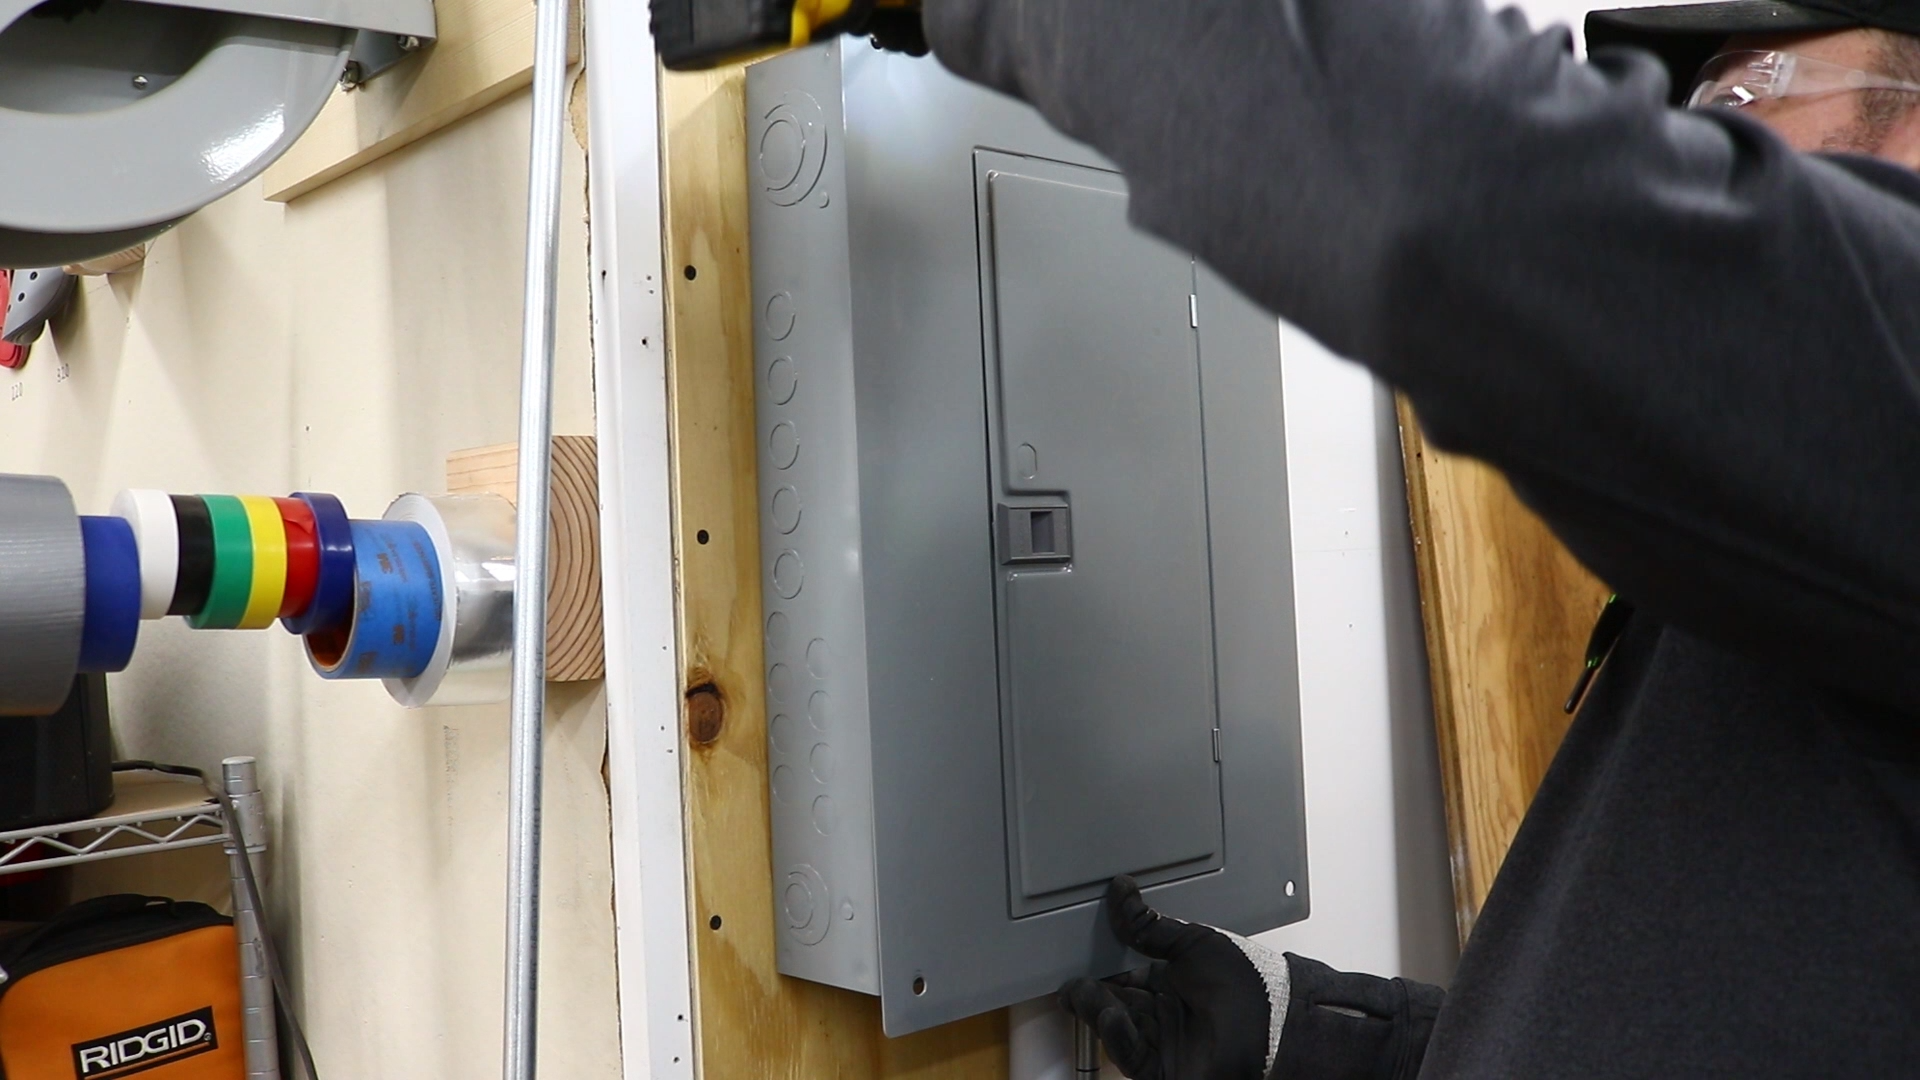 Removing panel cover